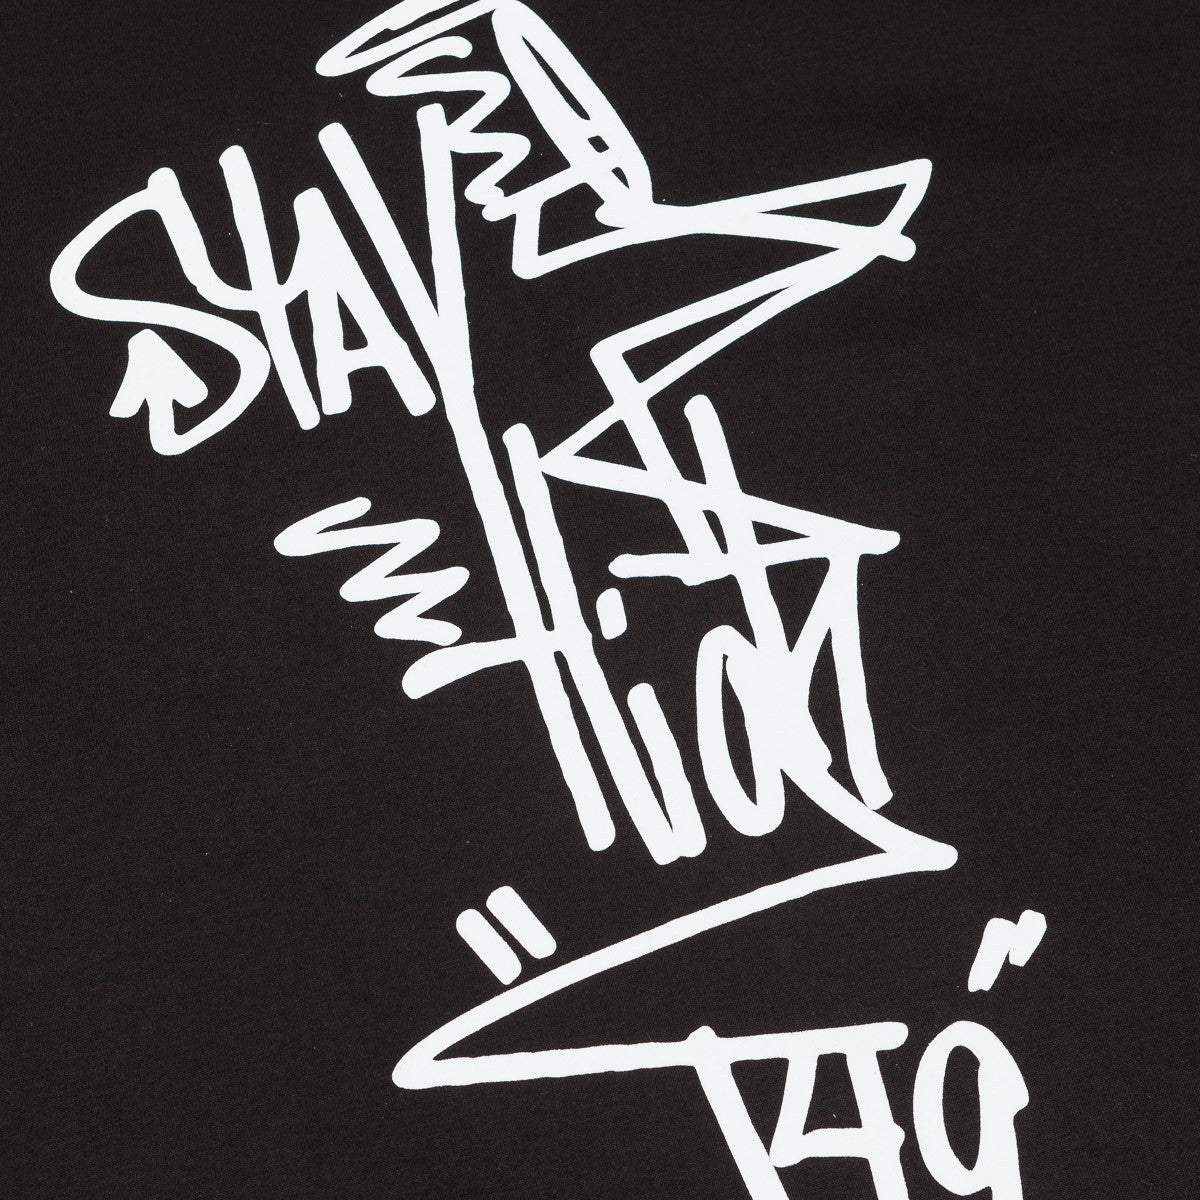 HUF X Stay High 149 Full Tag T-Shirt - Black